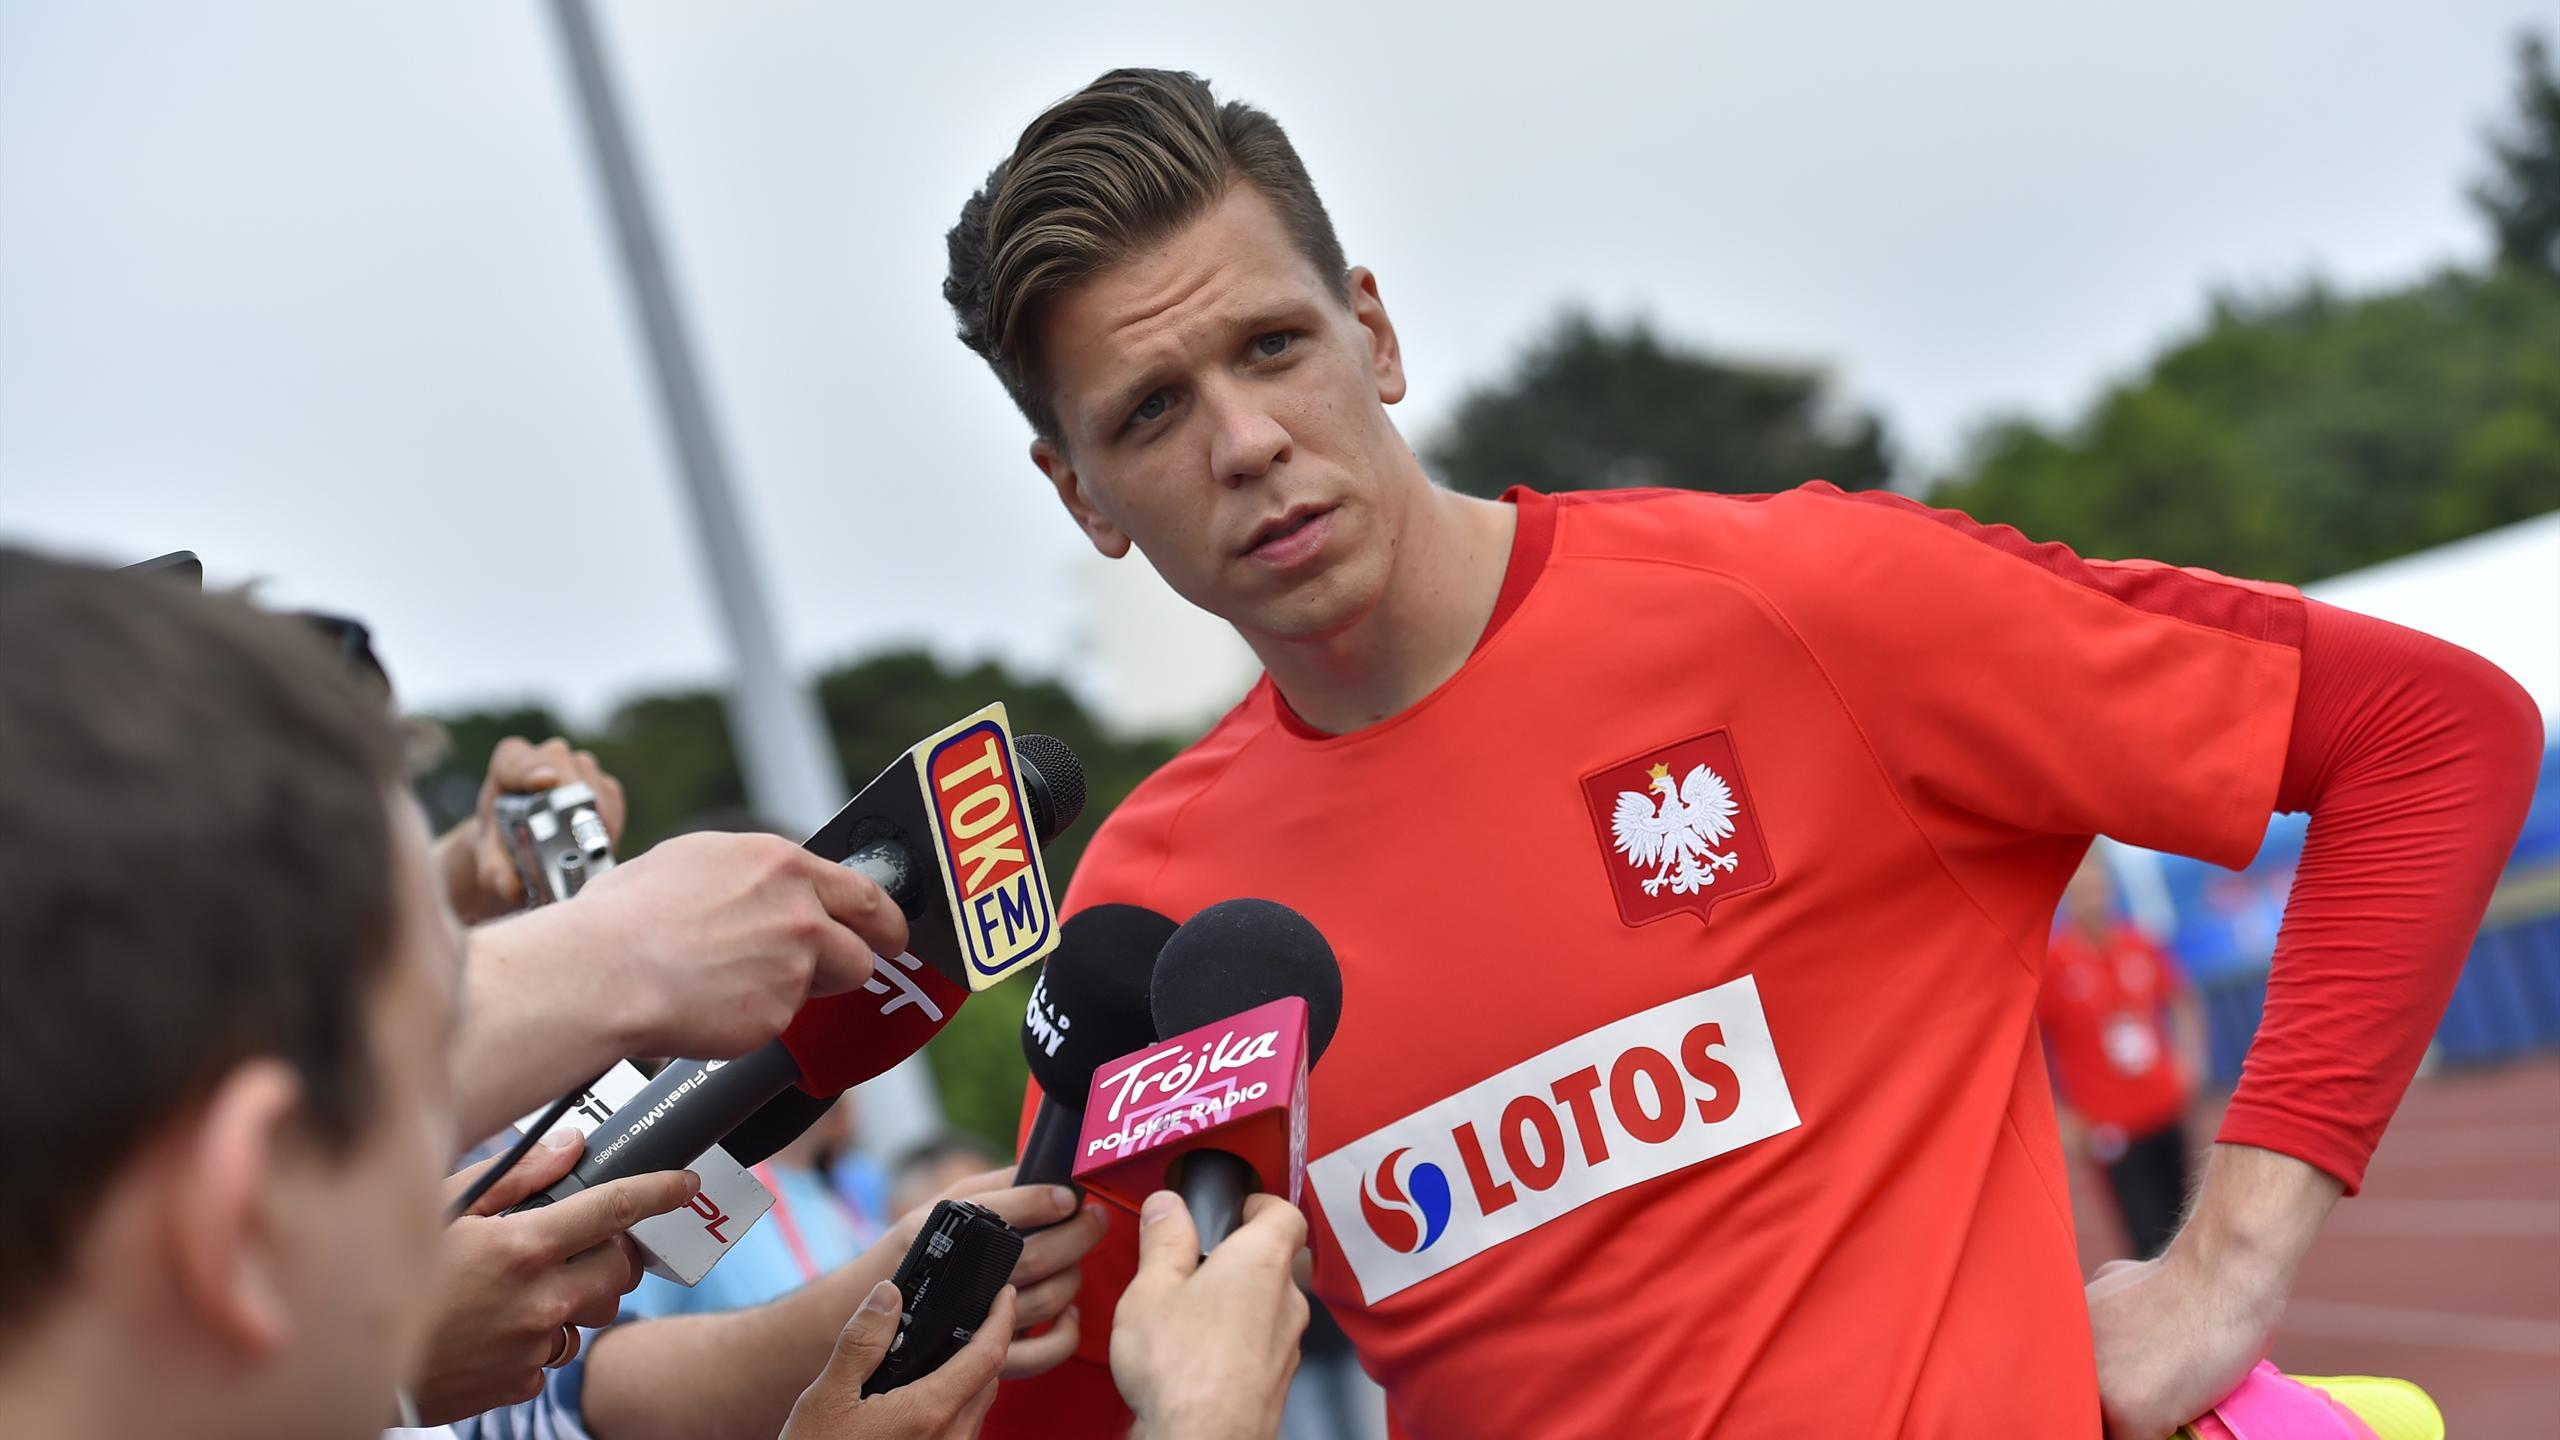 Poland's goalkeeper Wojciech Szczesny is pictured as he answers questions